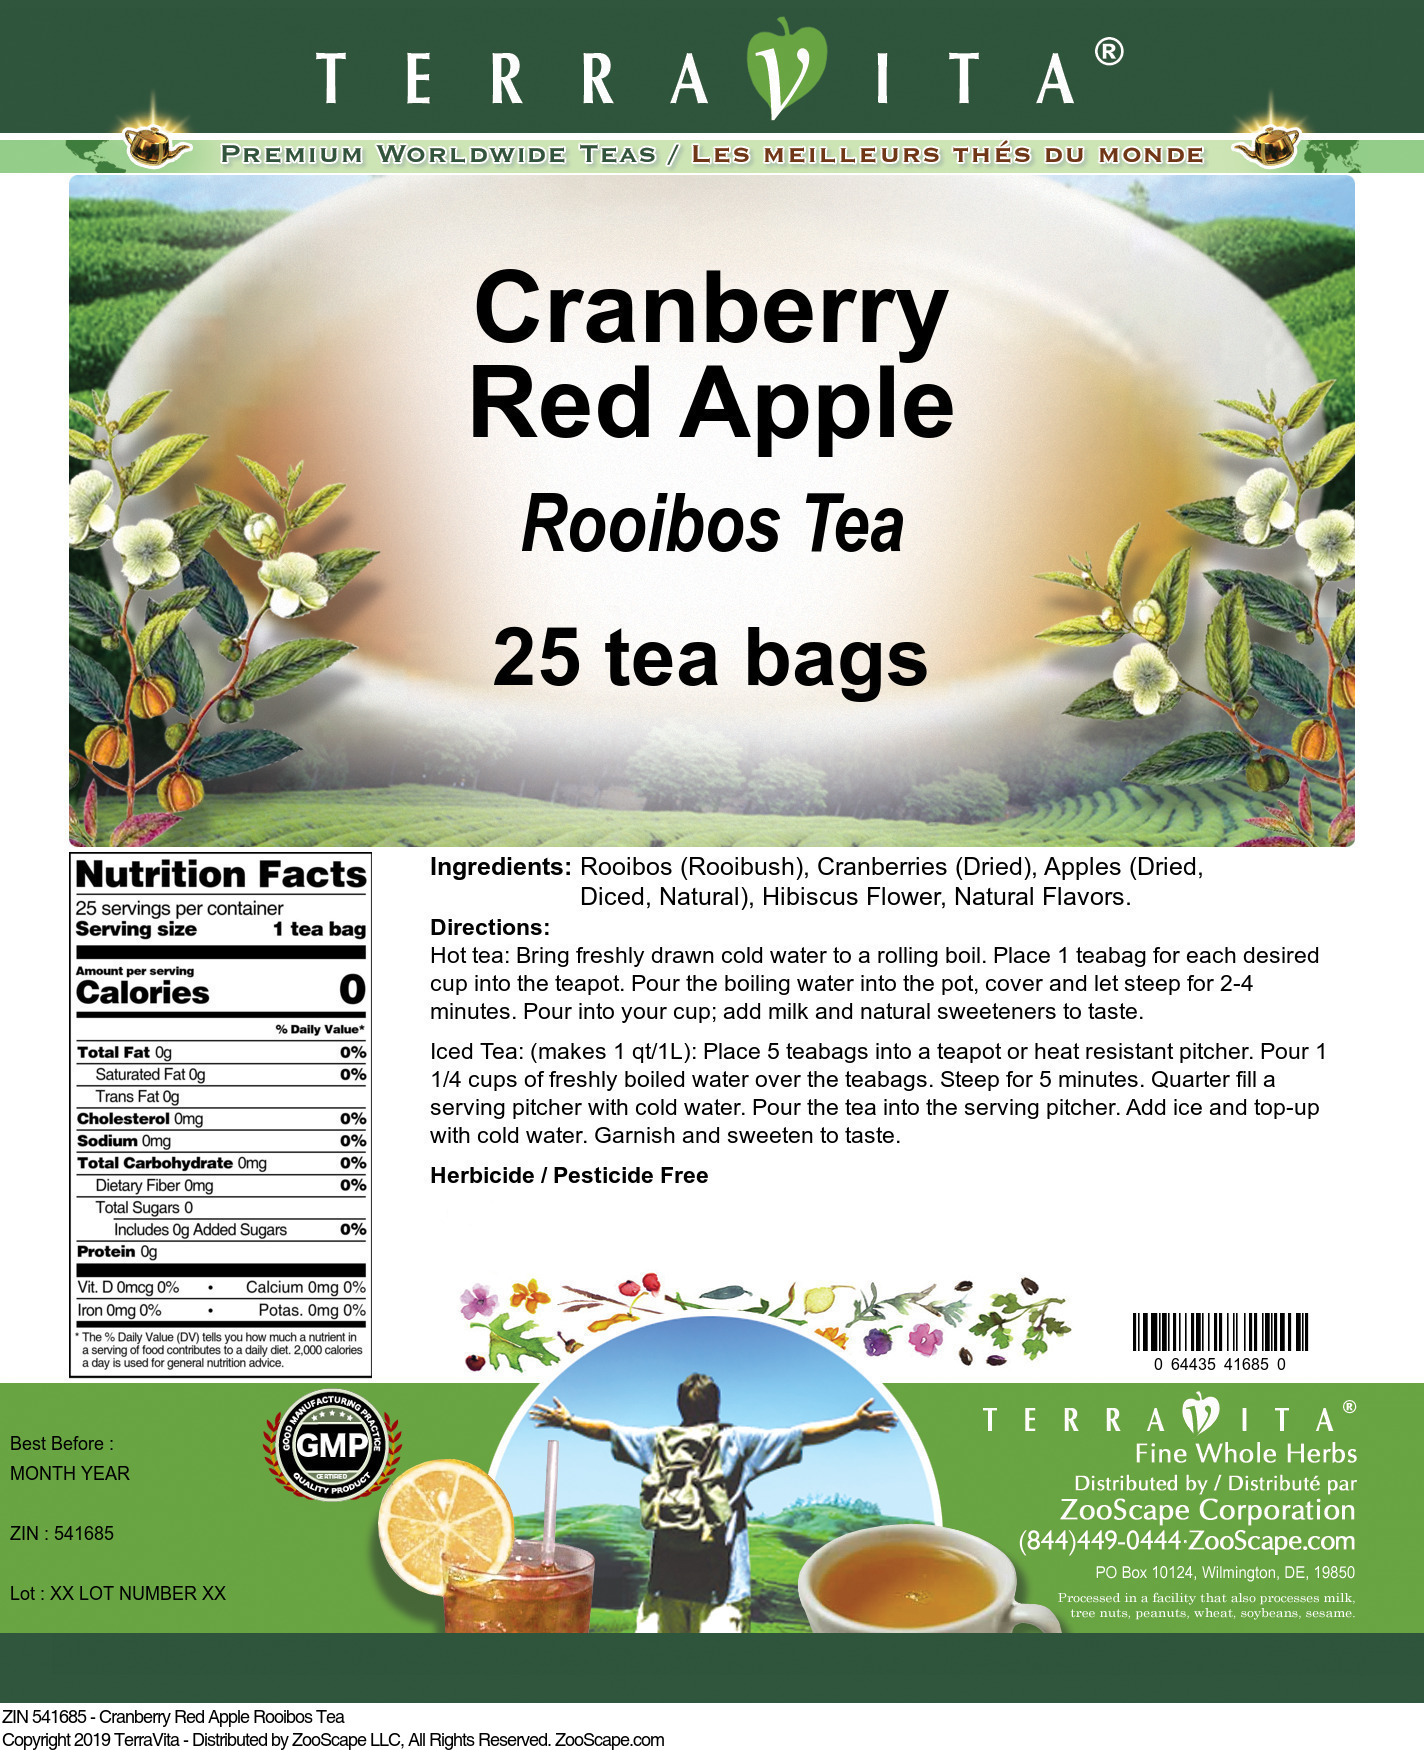 Cranberry Red Apple Rooibos Tea